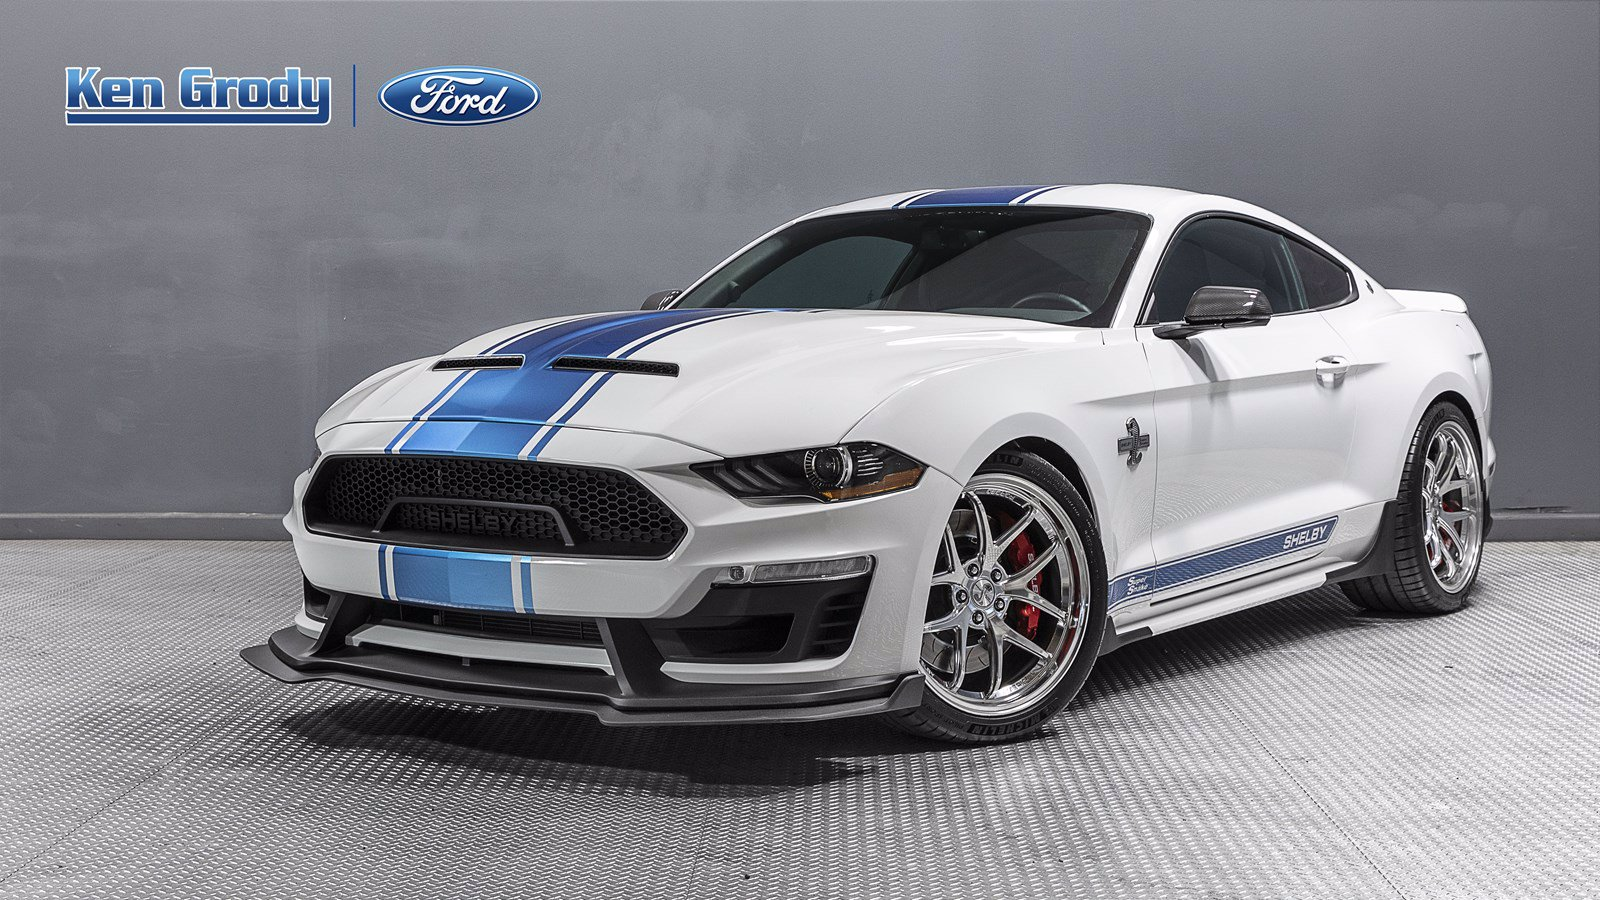 New 2019 Ford Mustang SHELBY SUPER SNAKE